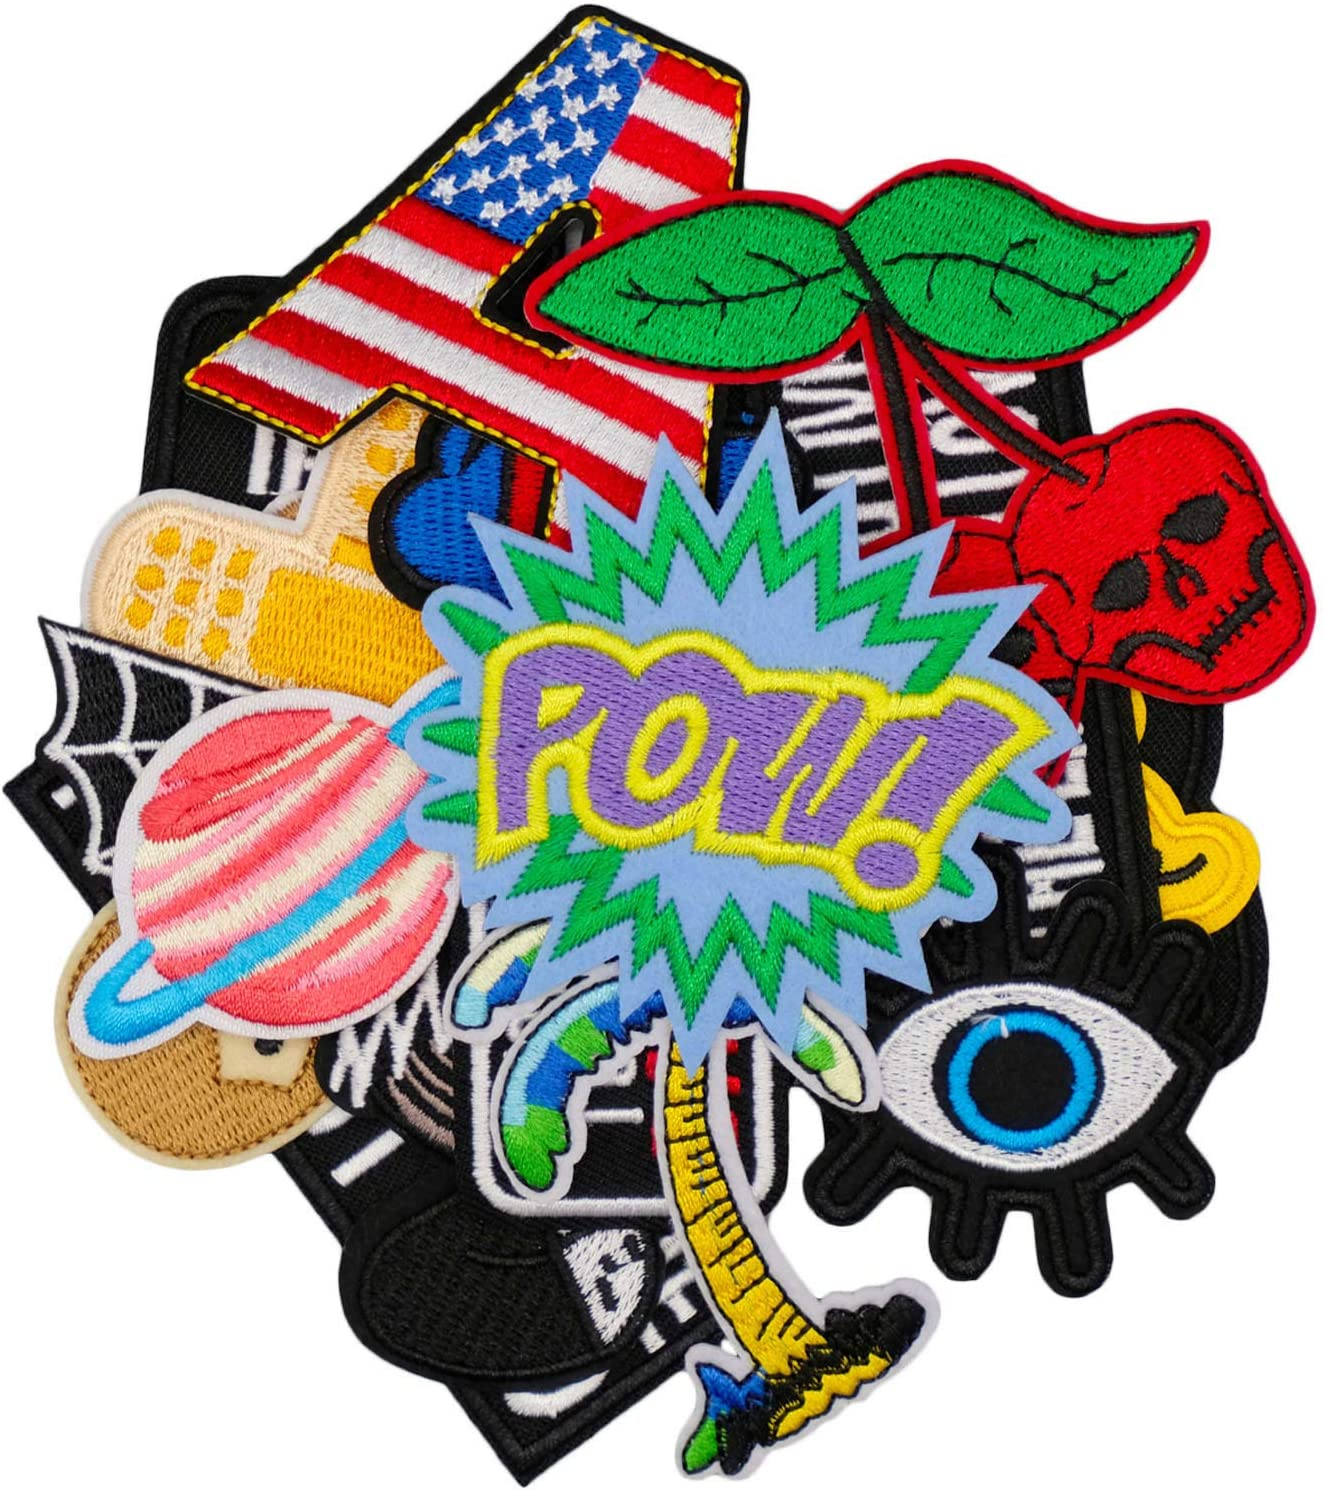 Wlkq 22Pcs Cute Embroidered Patch Accessories Assorted Word Patches Sew On/Iron On Patches Applique for Jackets Jeans Pants Backpacks Clothes Hats (Wappen-36-22pcs)